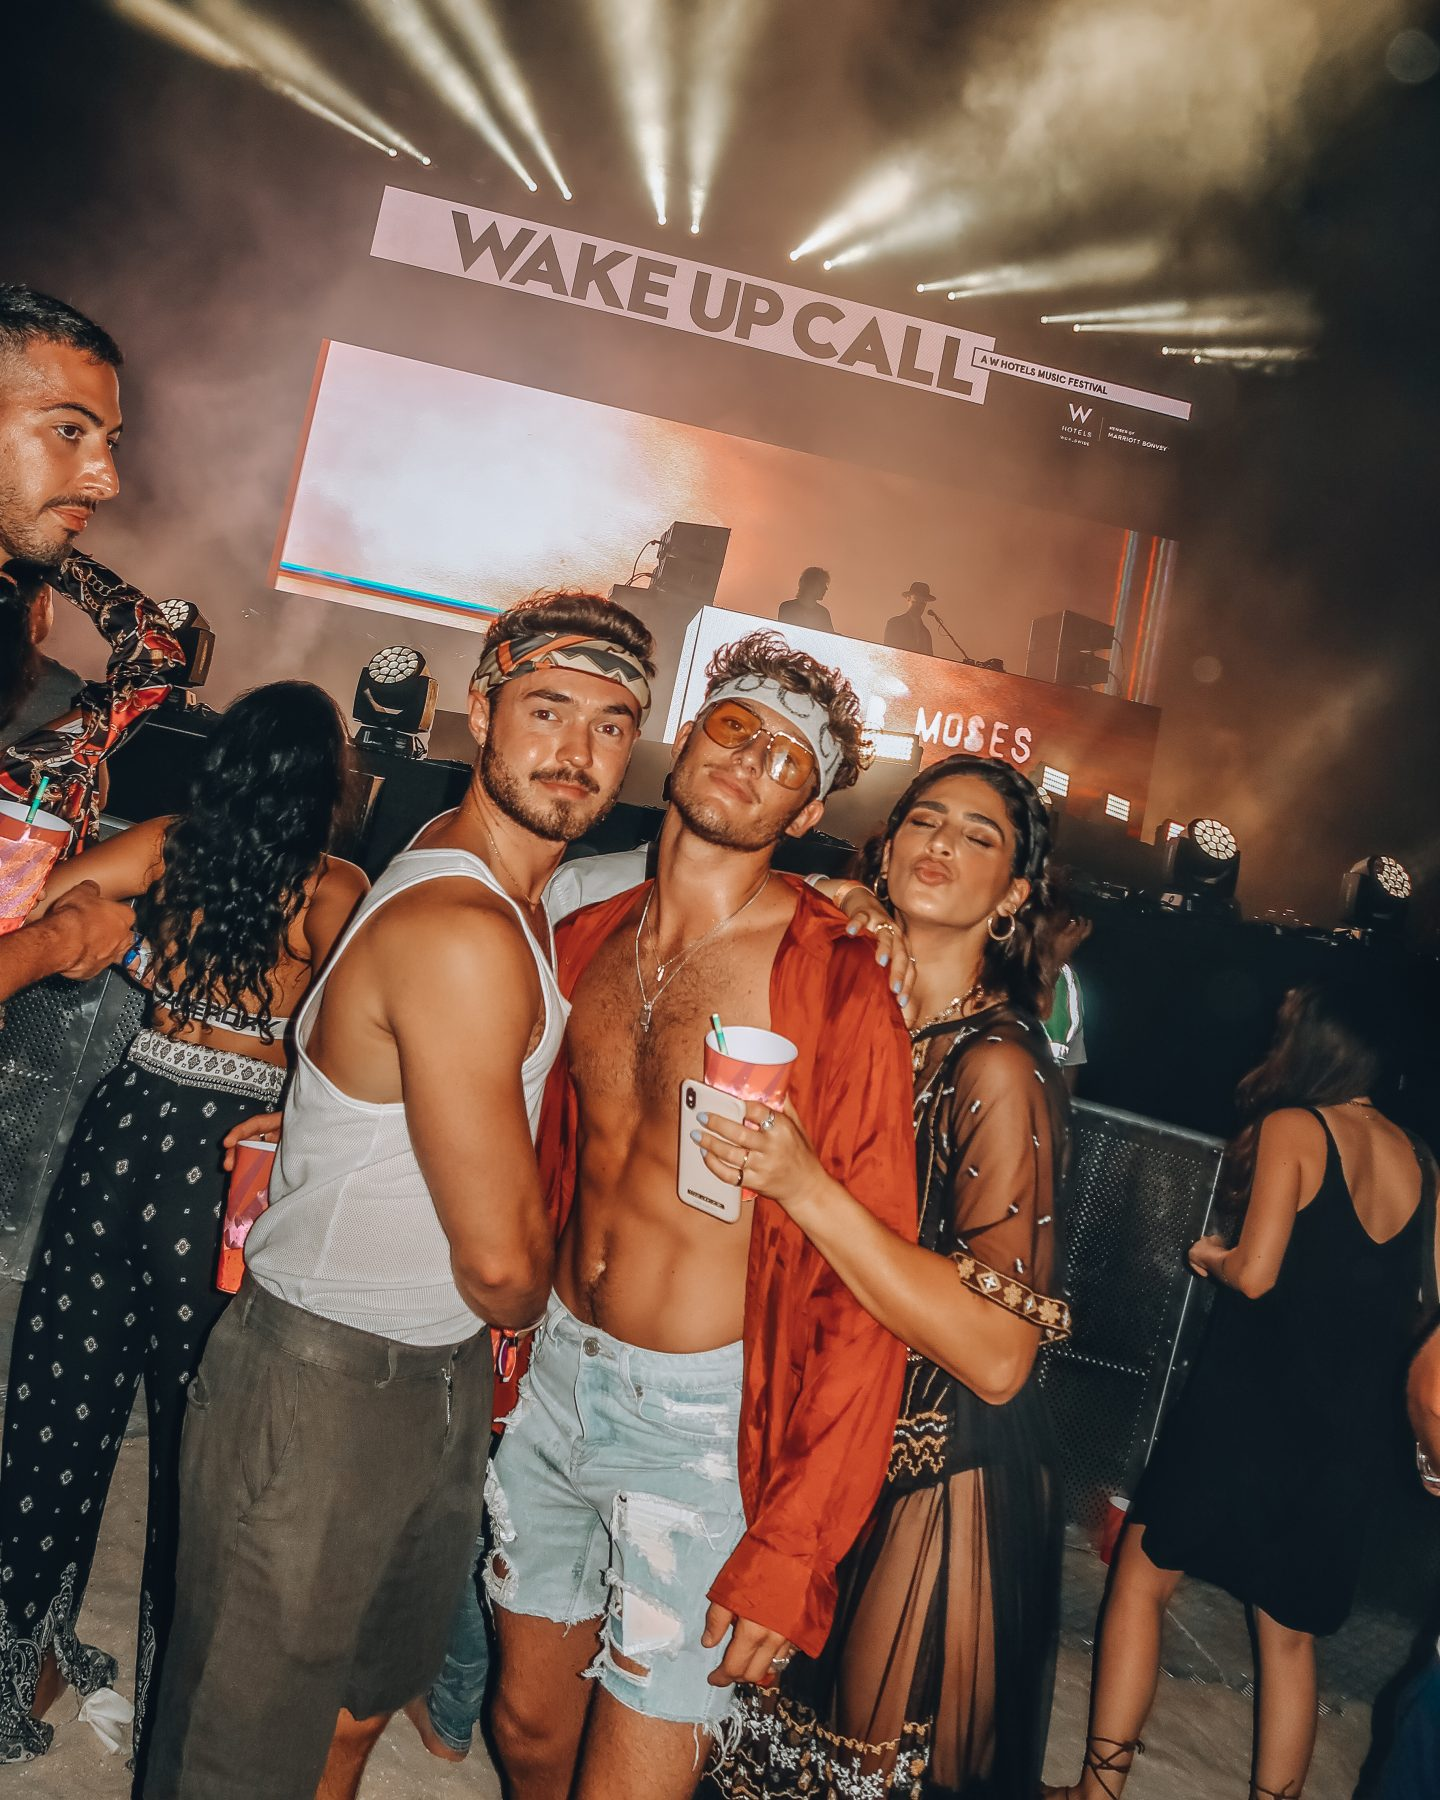 A group of friends at the Wake Up Call Festival in Dubai